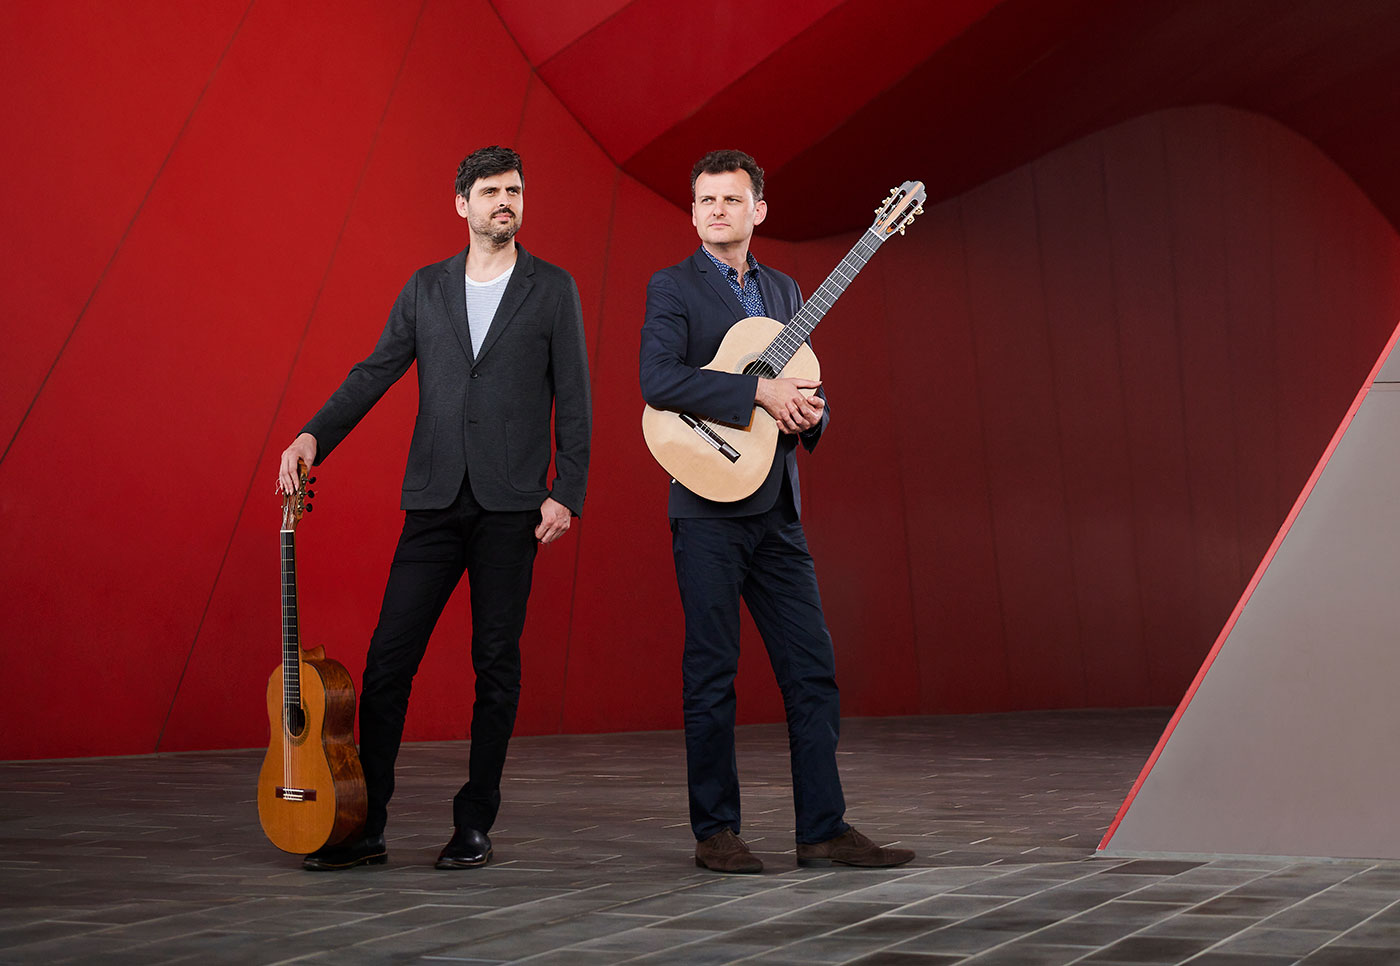 Slava and Leonard Grigoryan standing with instruments in the forecourt of the National Museum of Australia.